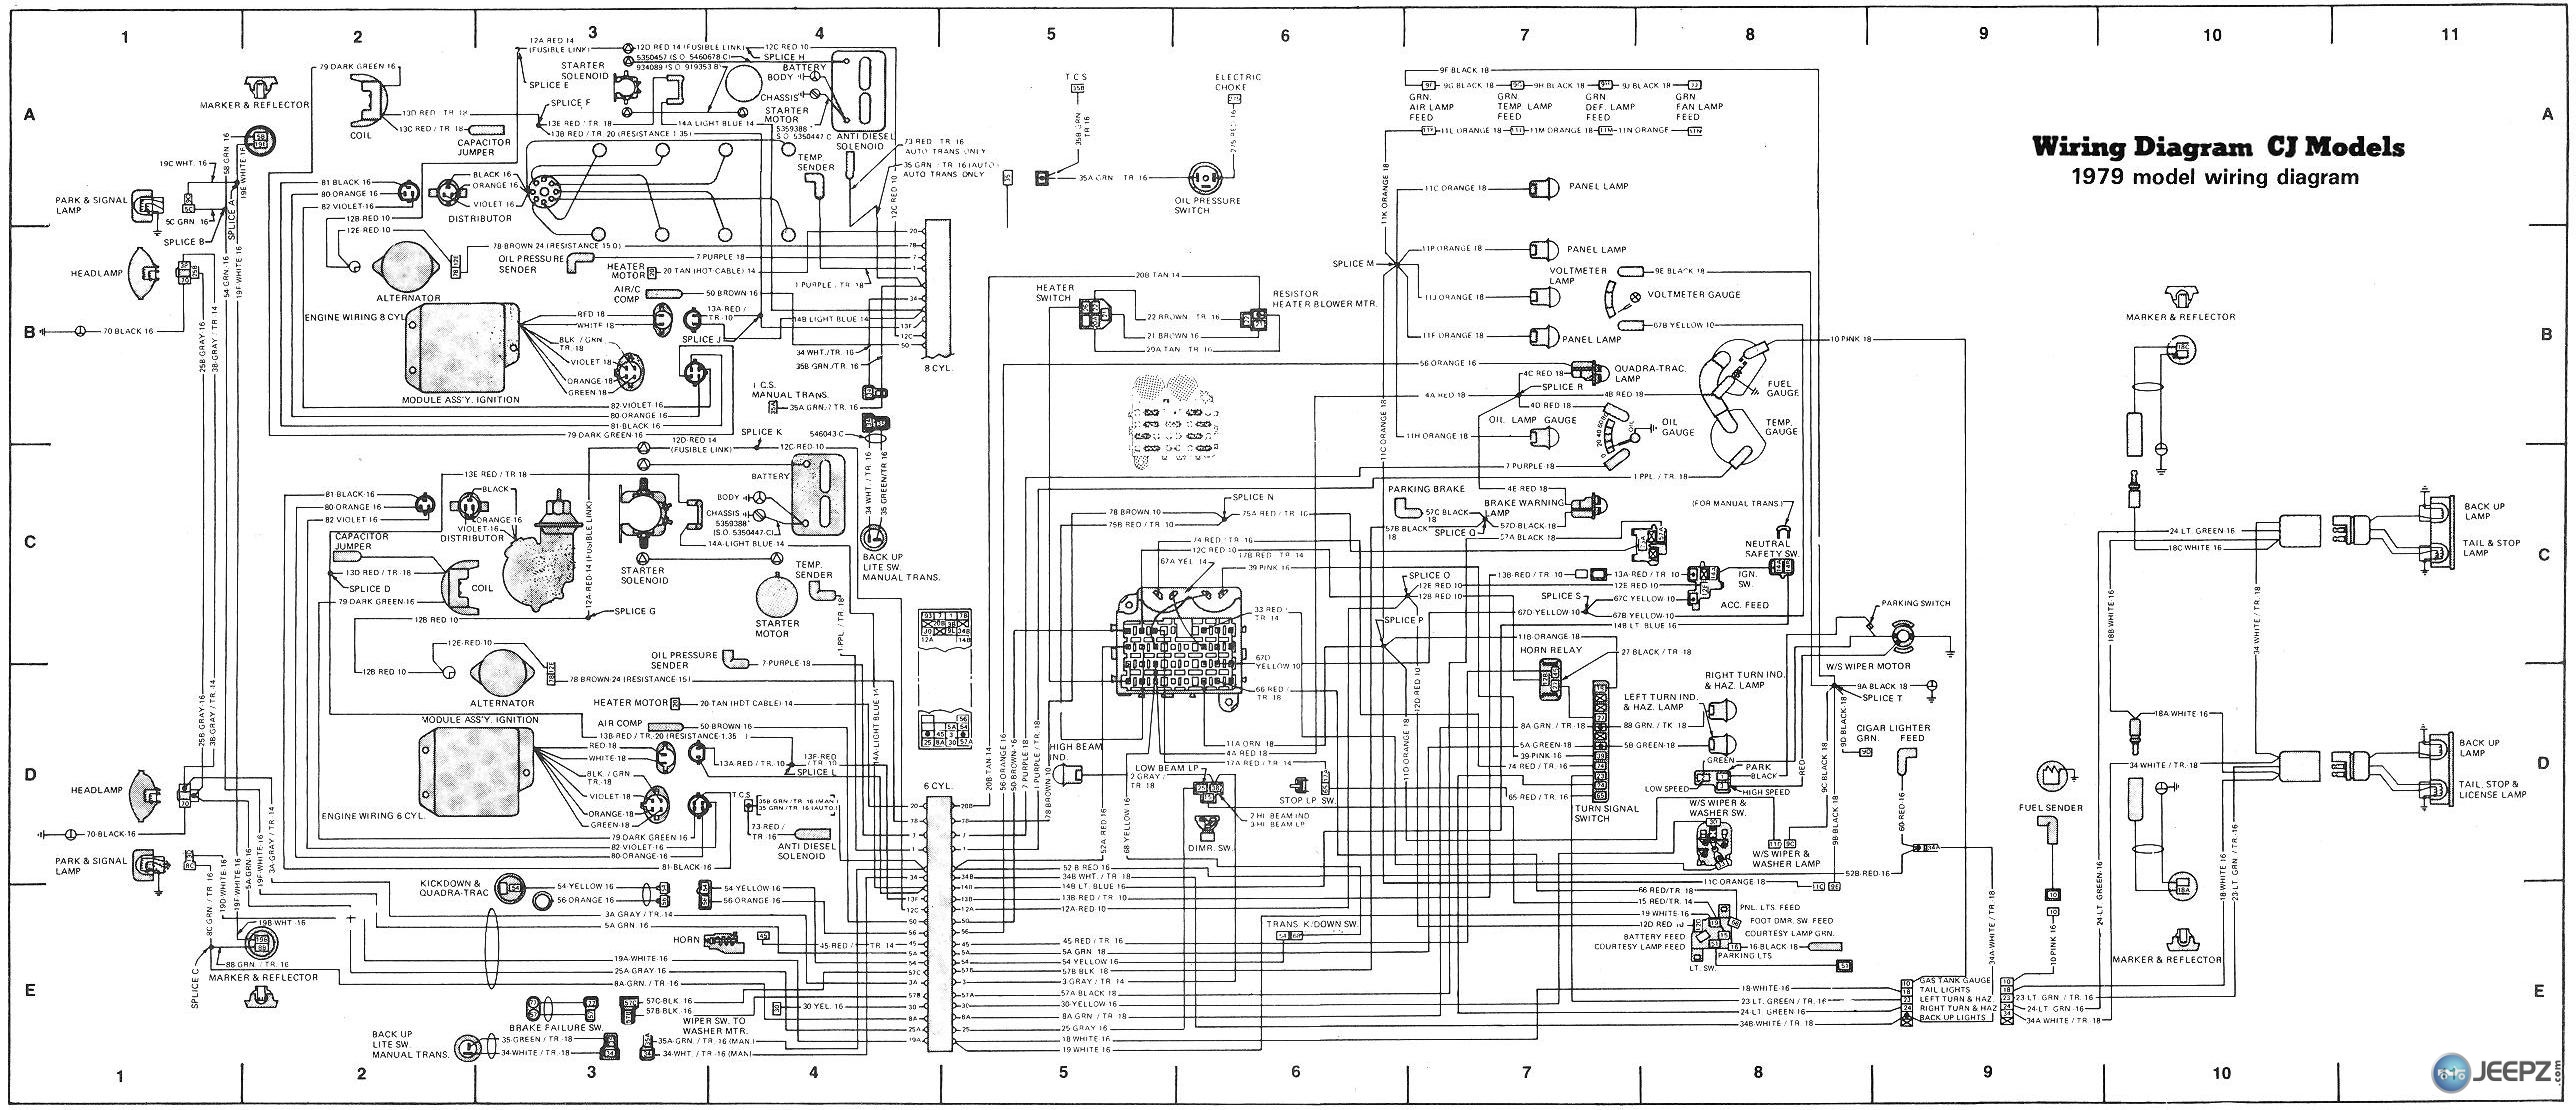 2748d1243285147 cj headlight wiring colors cj wiring diagram 1979 cj headlight wiring colors jeep yj dimmer switch wiring diagram at pacquiaovsvargaslive.co